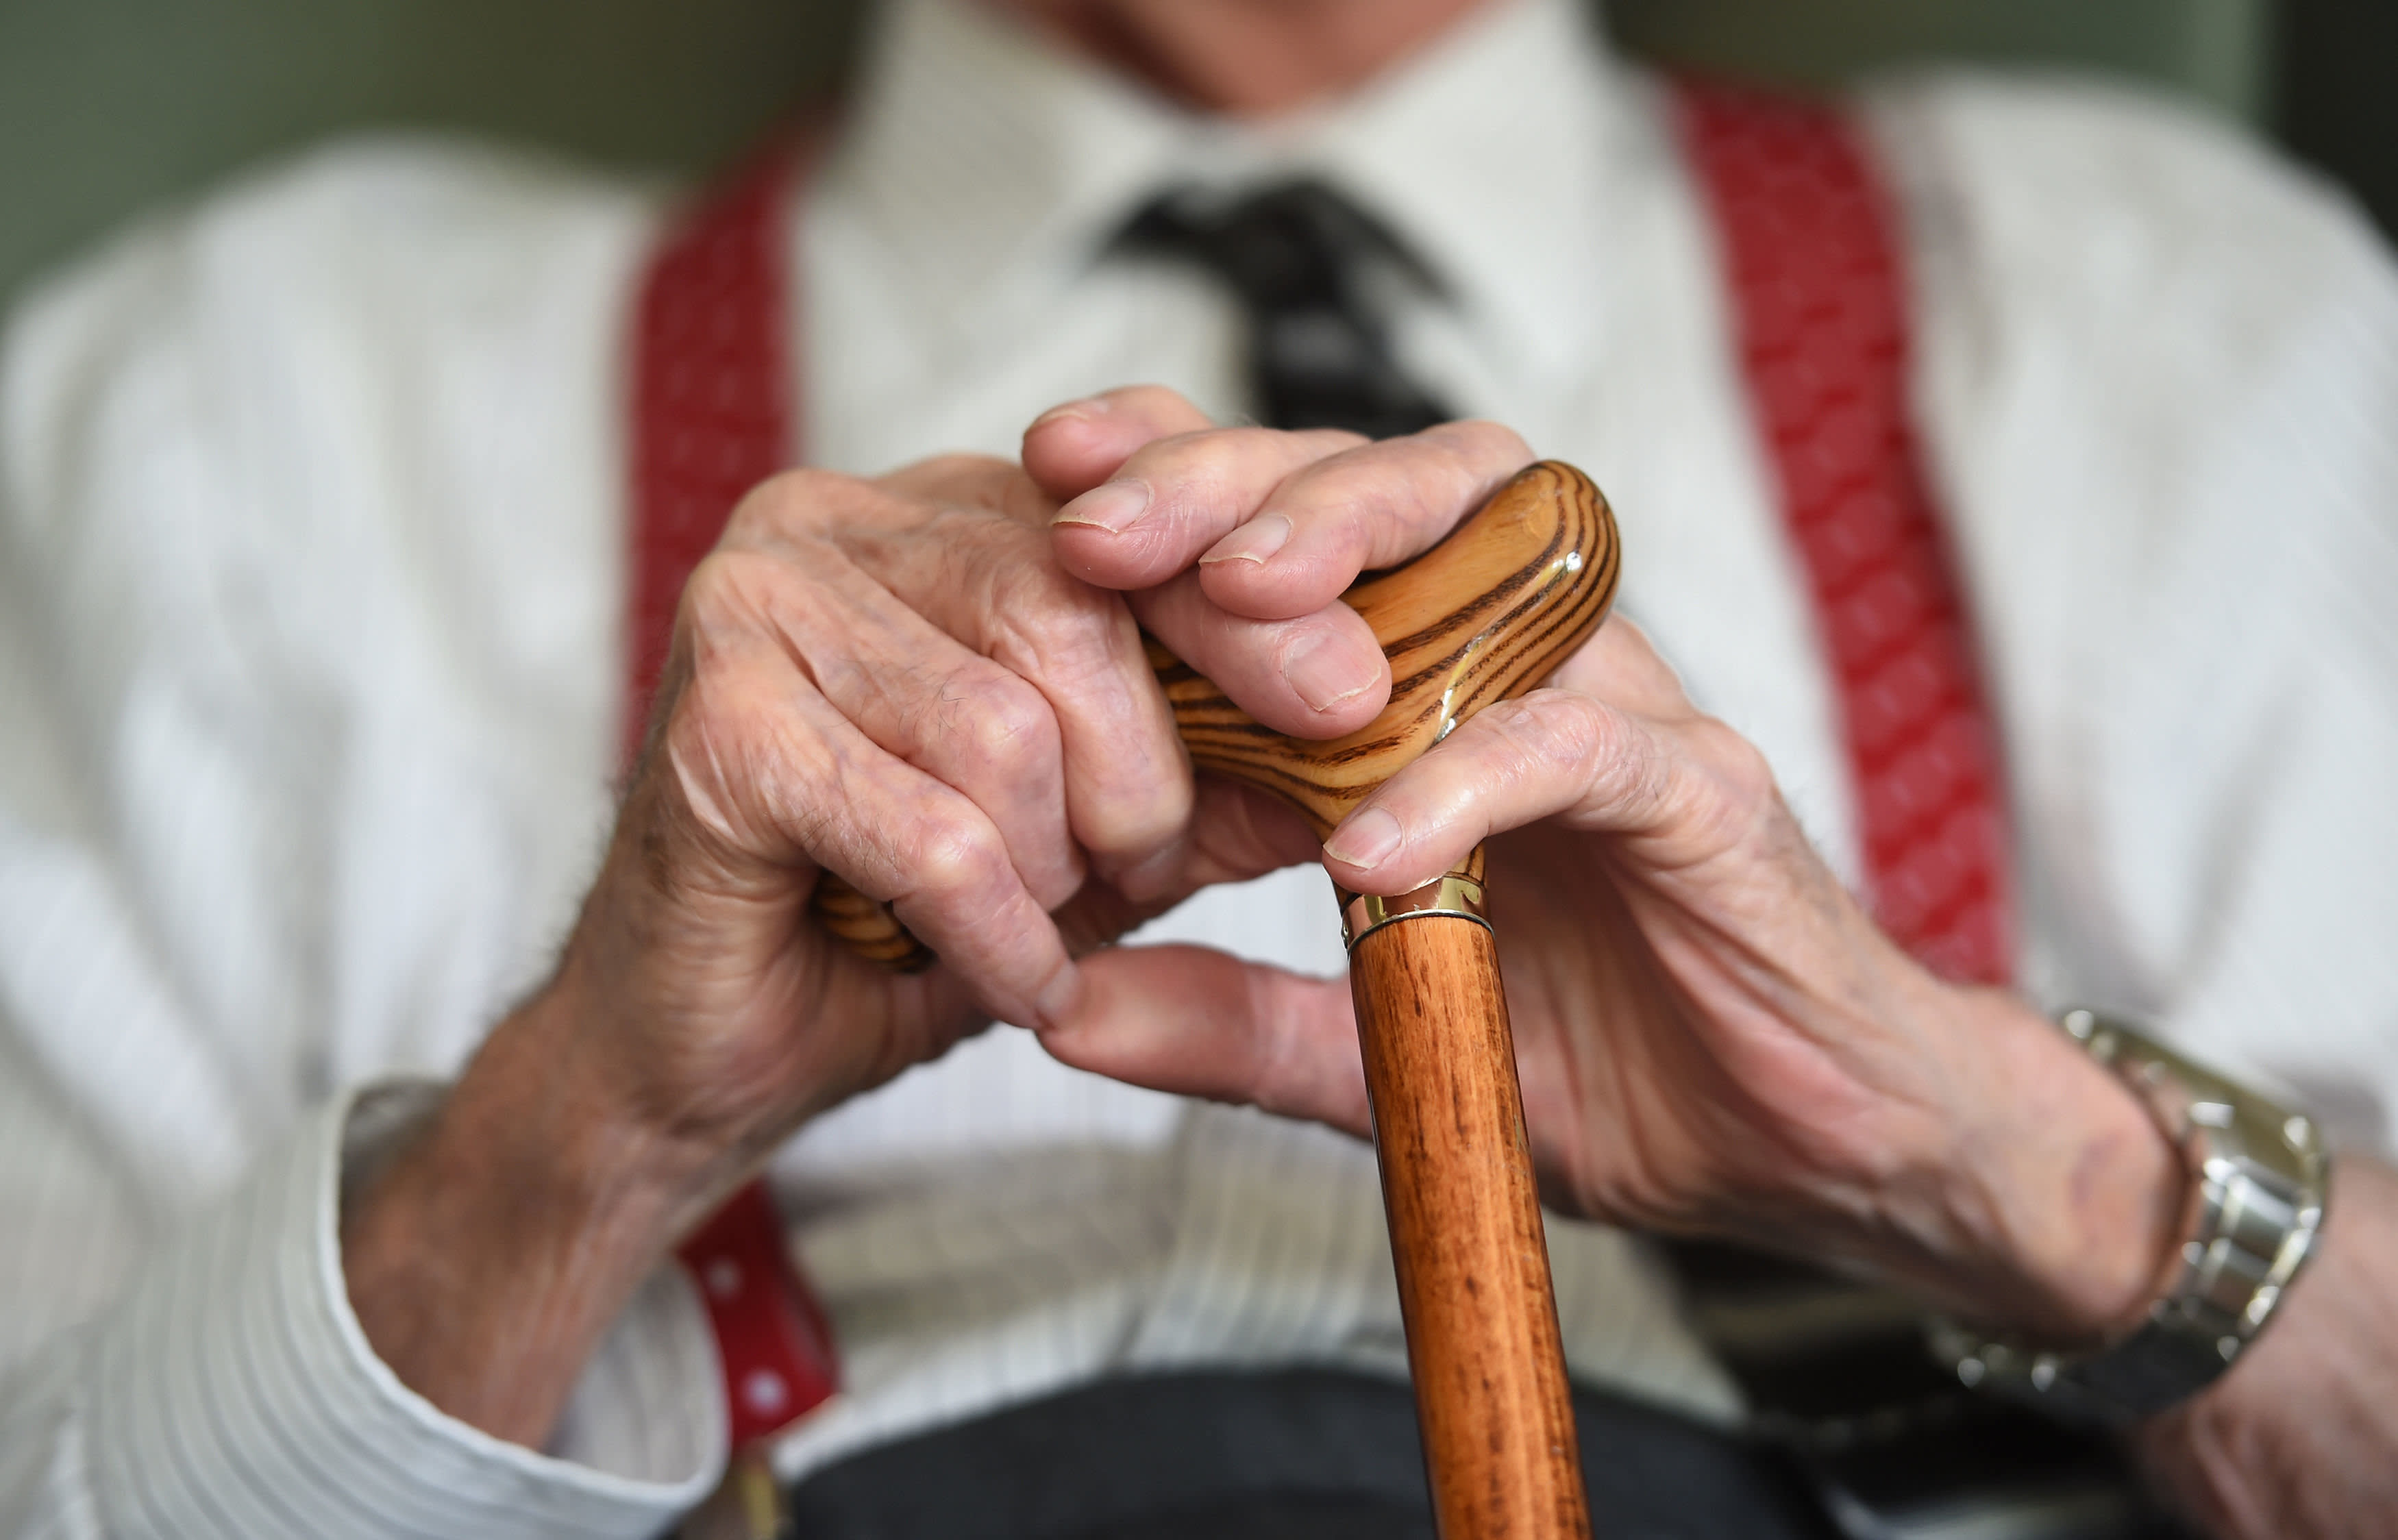 Govt 'finalising' plans to fix social care funding